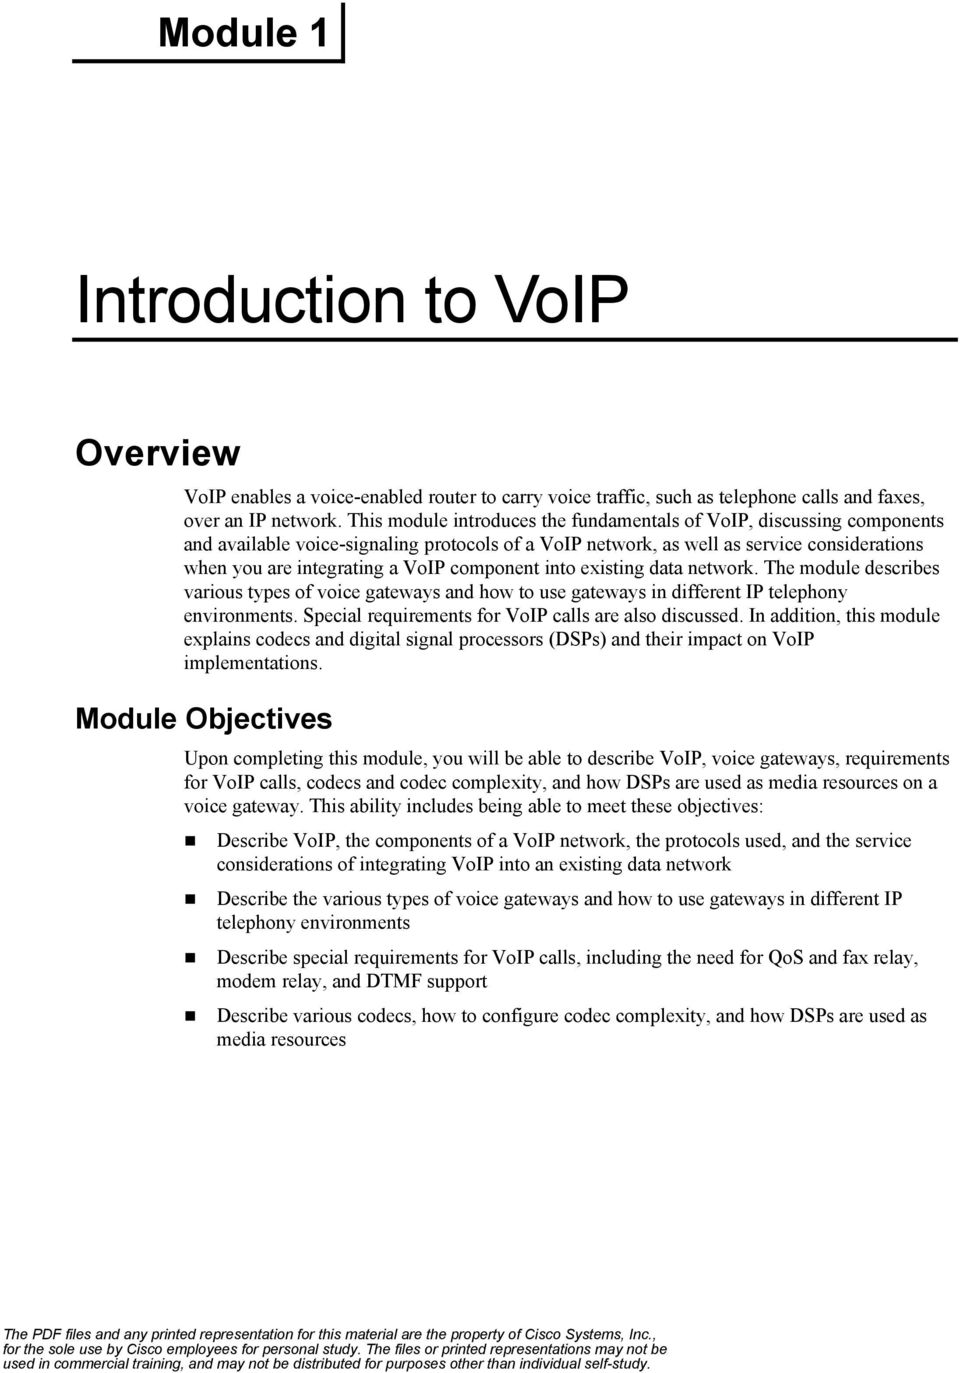 component into existing data network. The module describes various types of voice gateways and how to use gateways in different IP telephony environments.